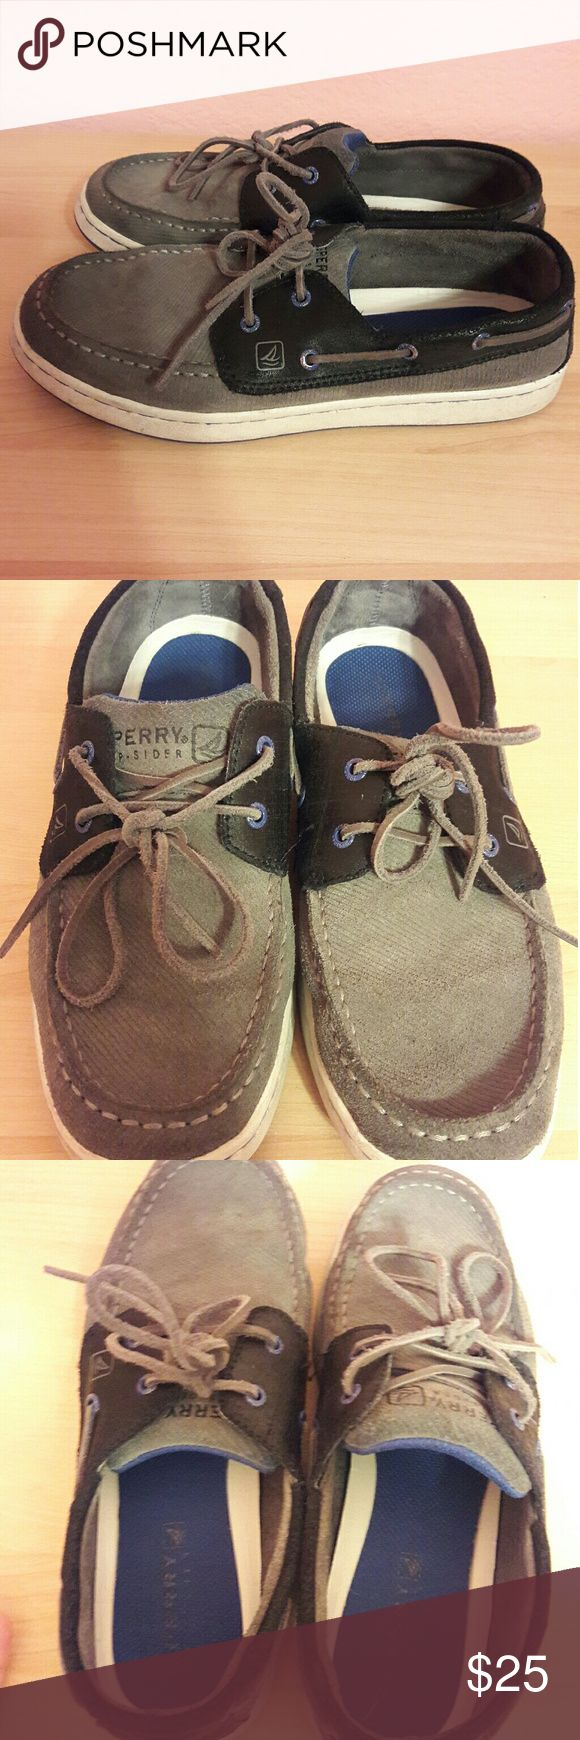 Boys Sperry Top-Sider Shoes Blue & Grey Boys Sperry's size 6. Very good condition Plenty of sole on bottom of shoe. Worn only a few times. Sperry Top-Sider Shoes Dress Shoes